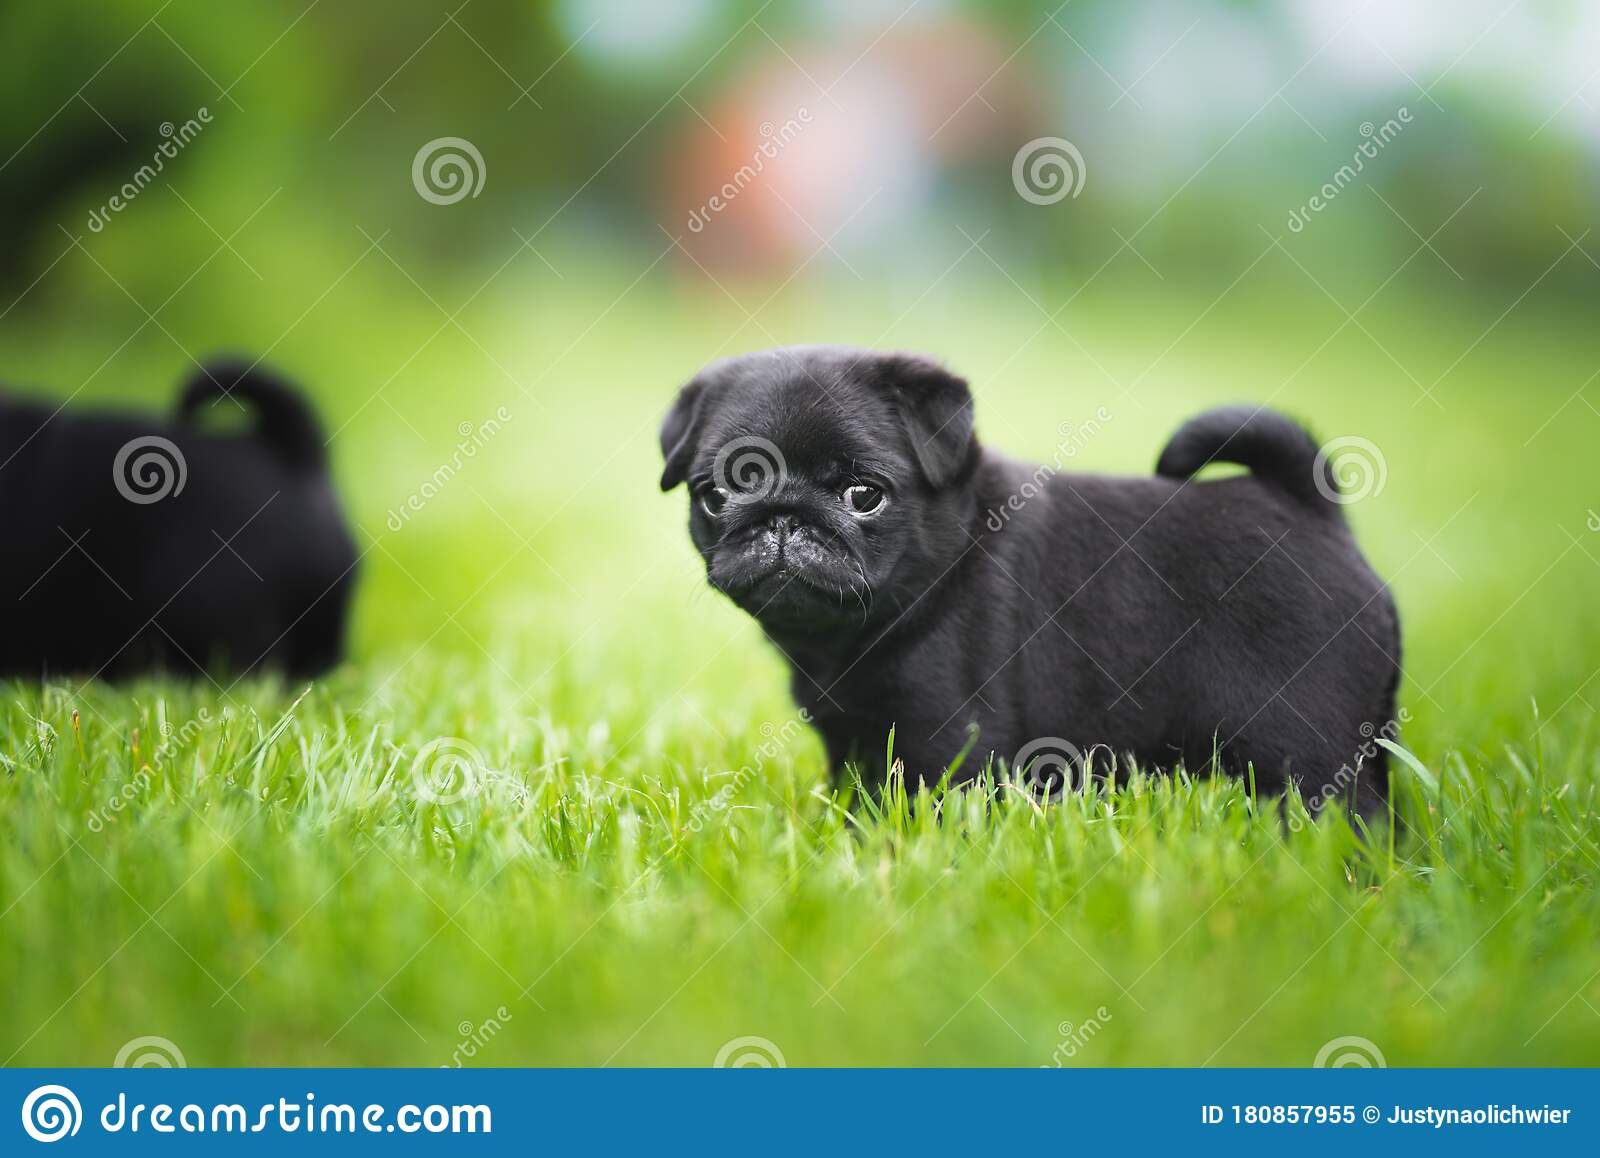 Black 6 Week Old Pug Puppy In Green Grass Portrait Stock Image Image Of Young Mammal 180857955